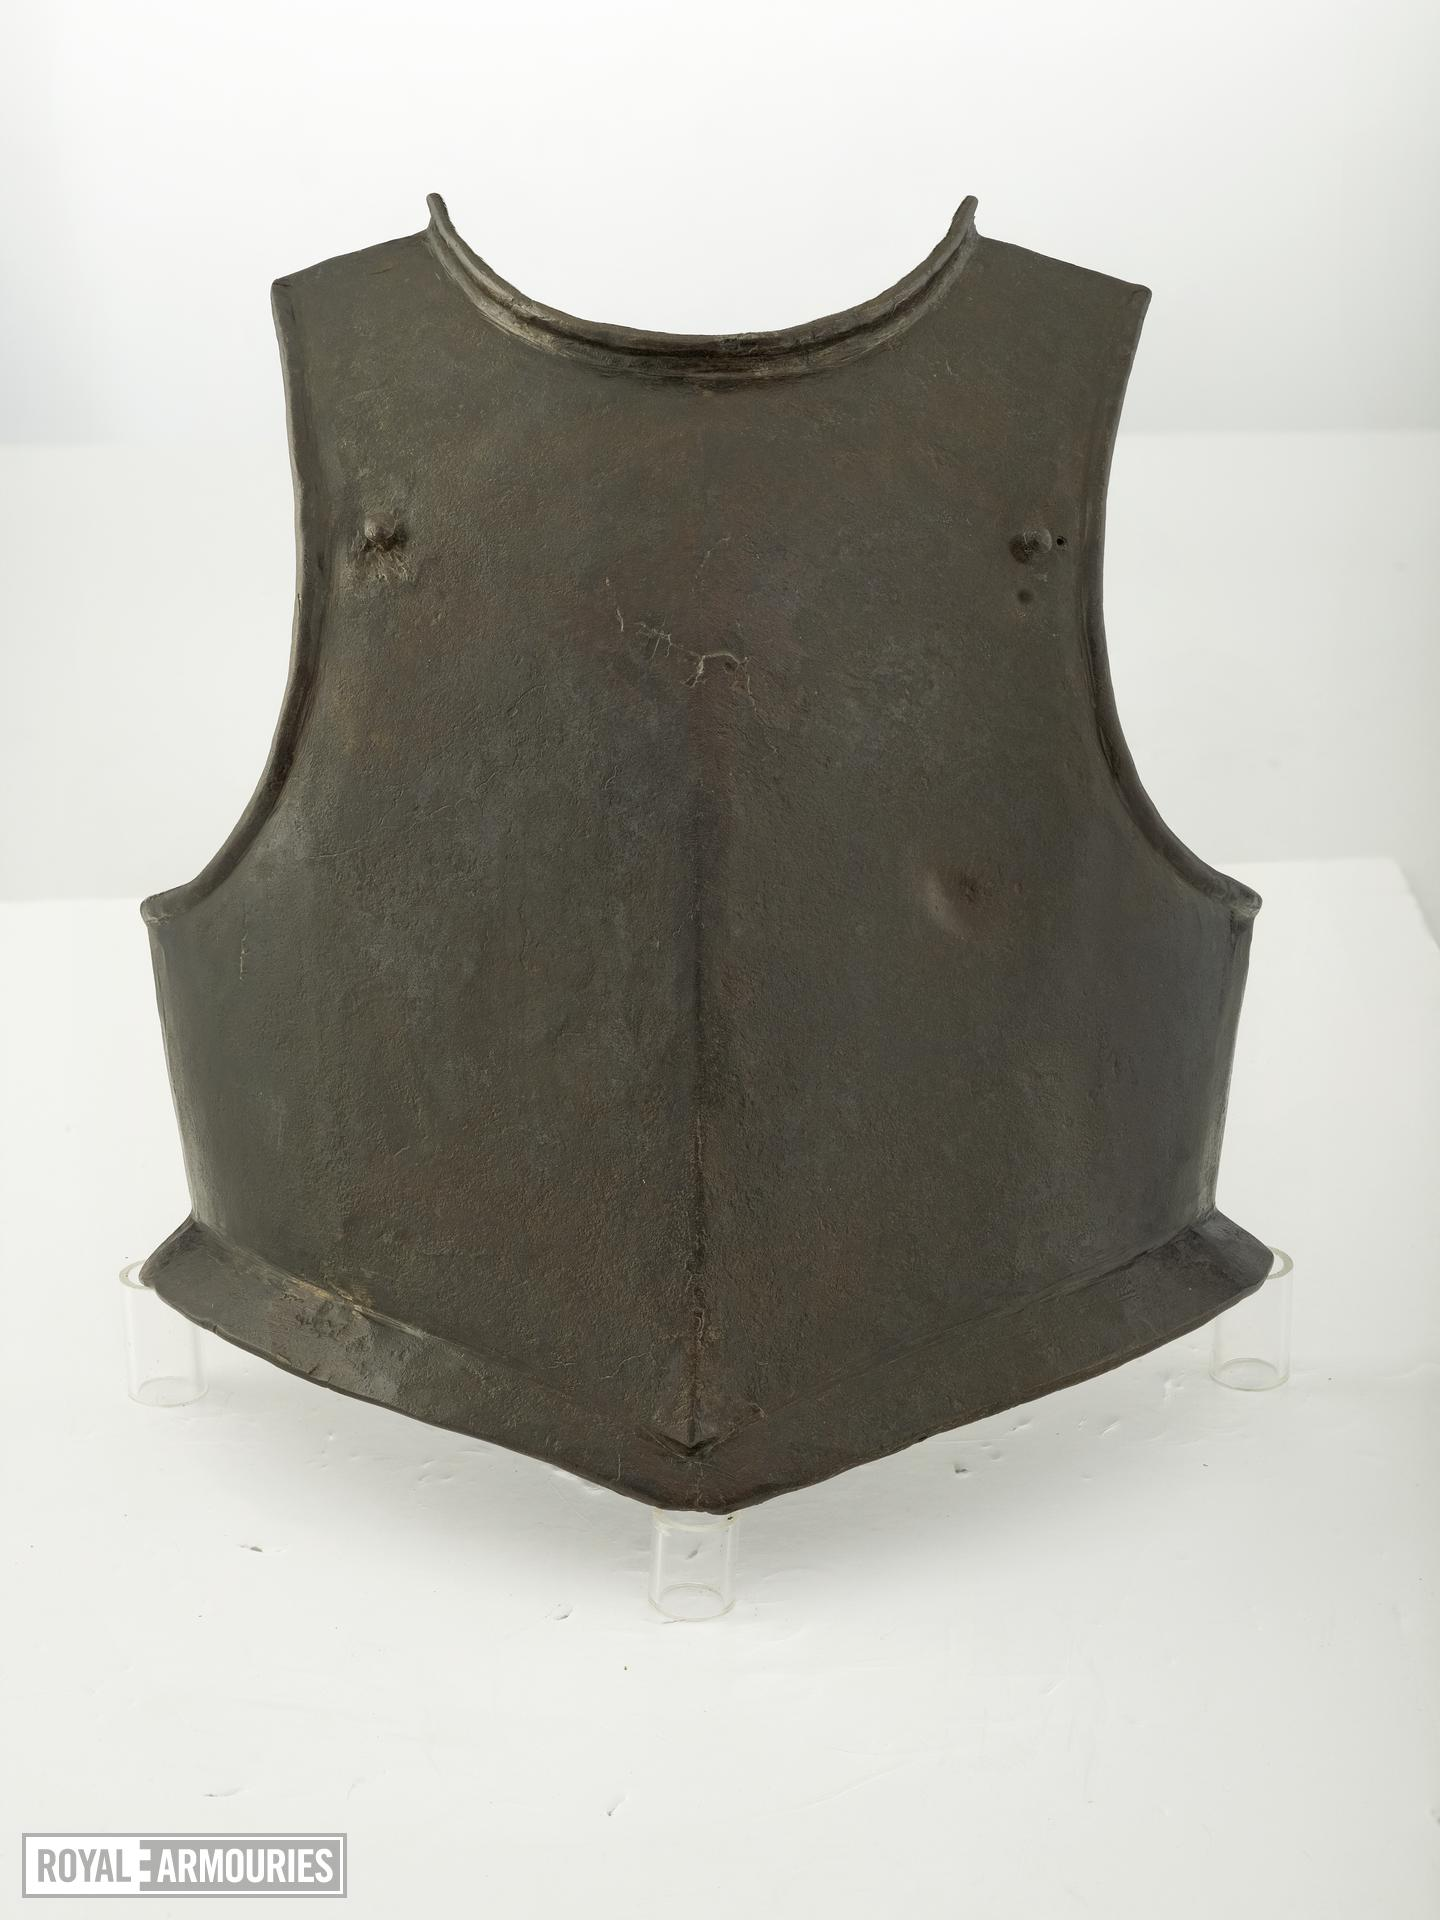 Harquebusier's breastplate Littlecote collection